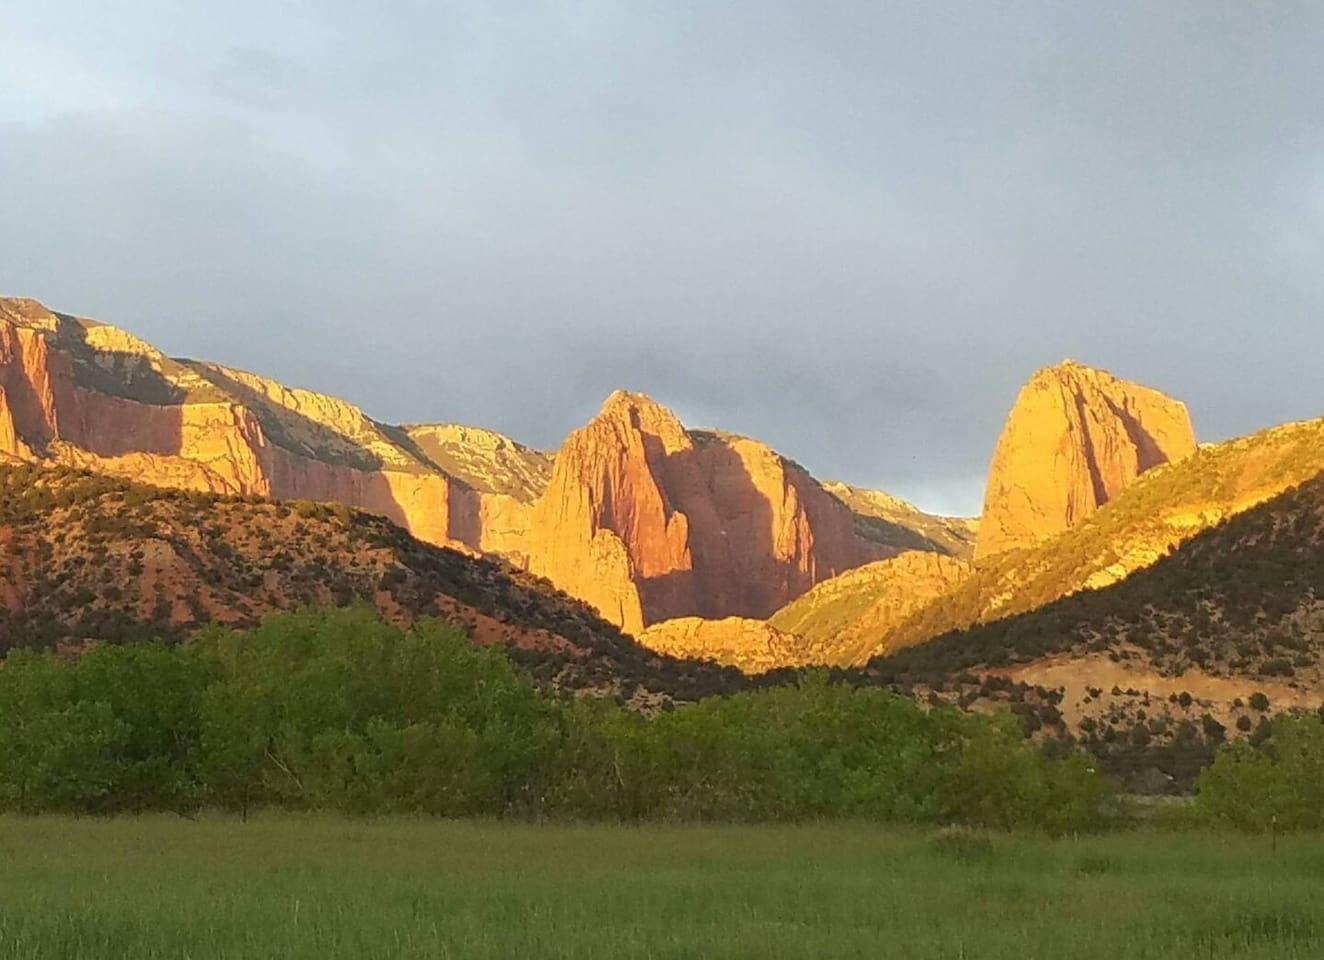 Backyard View of Kolob